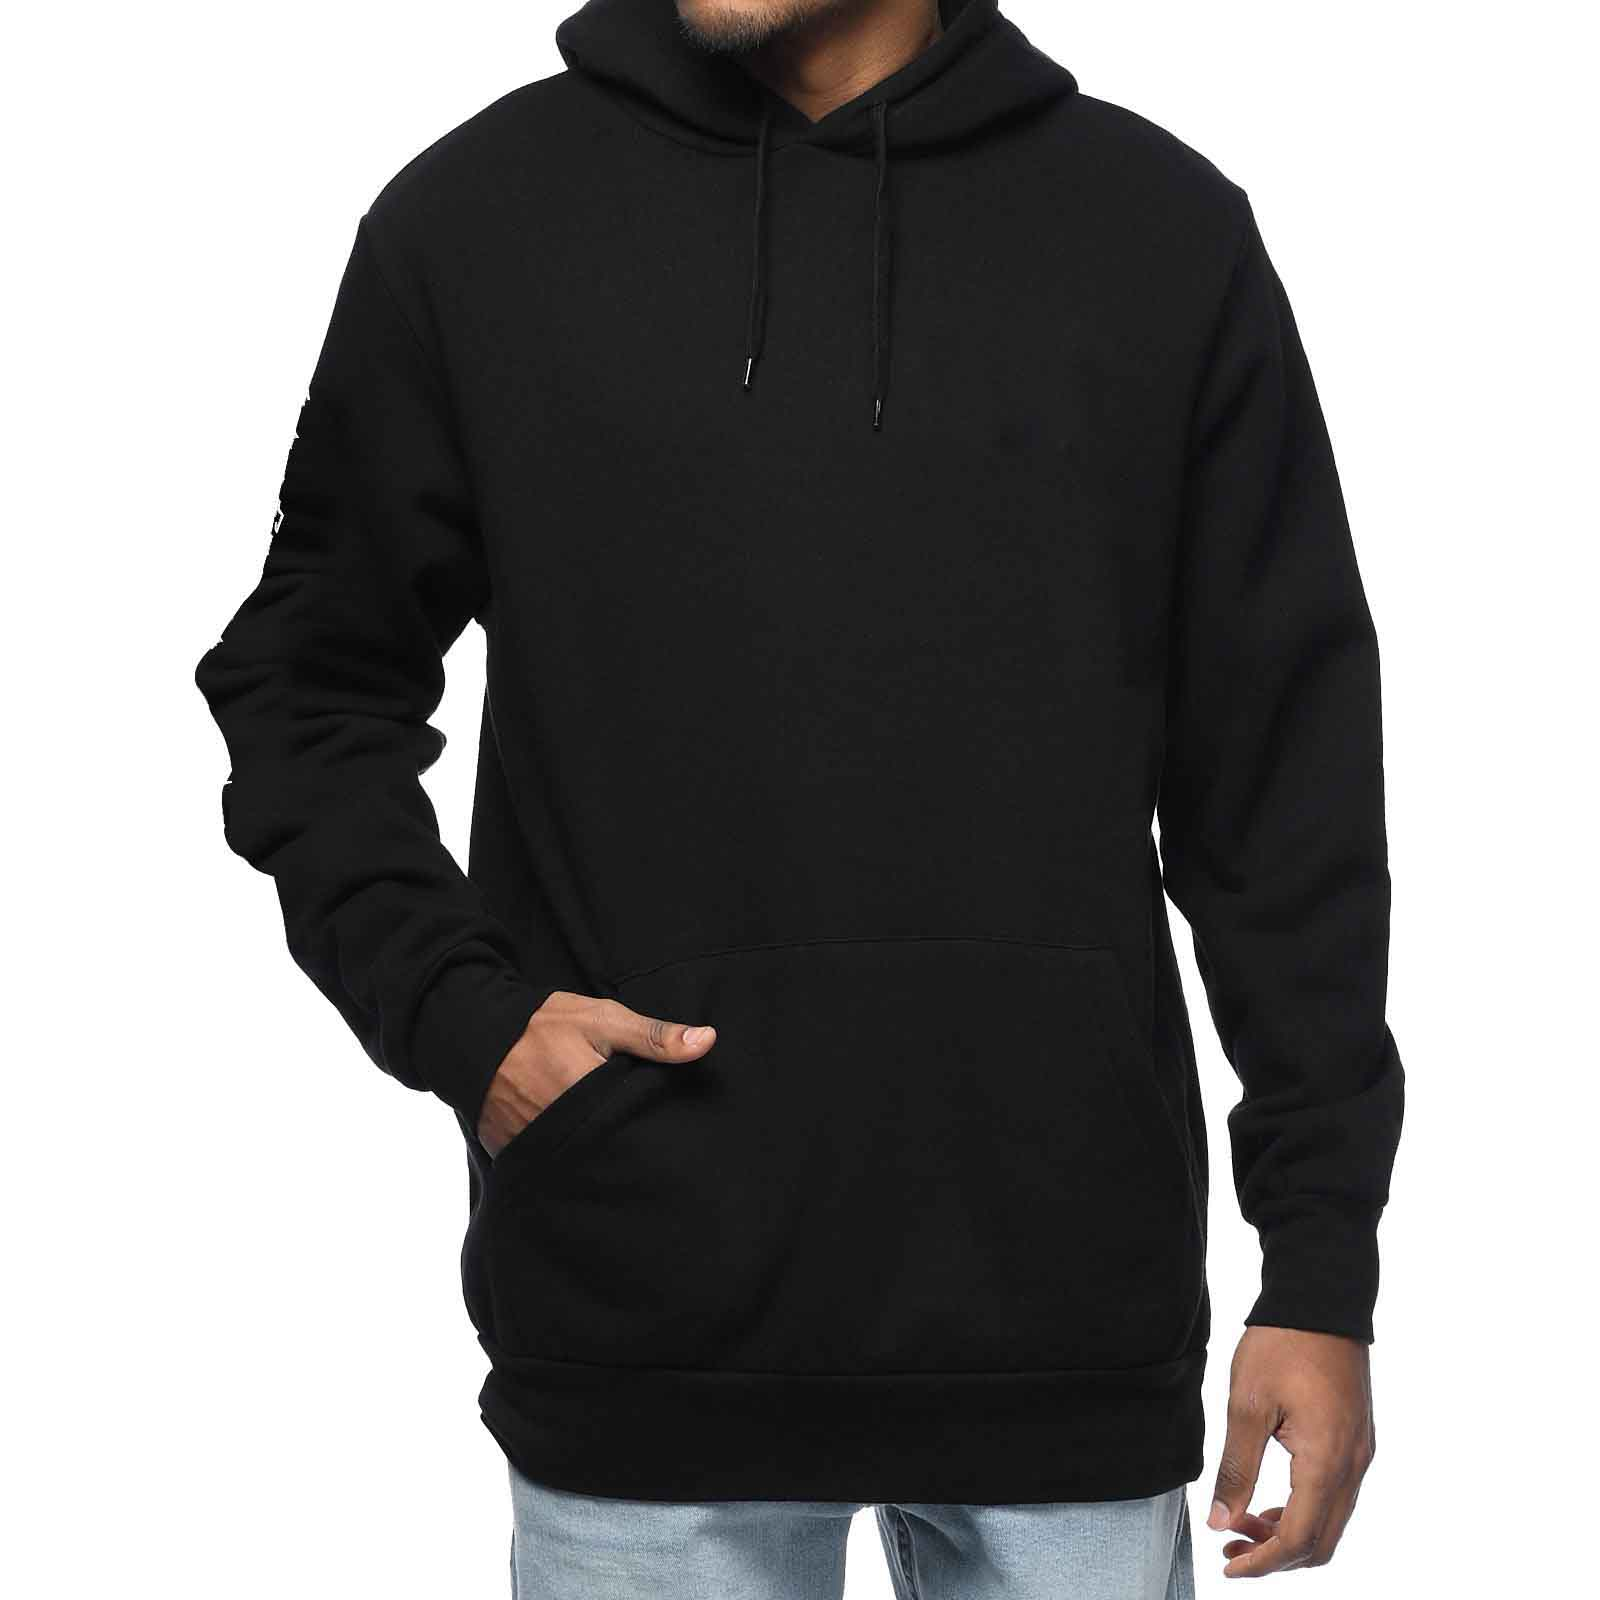 Custom Cut and Sew Hoodie Manufacturers and Contractors | Zega Apparel